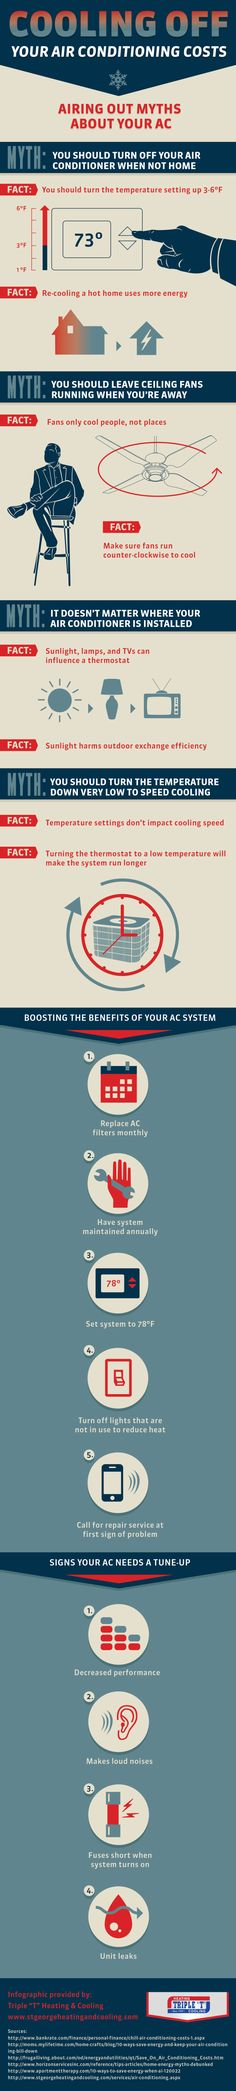 Replacing the air conditioner's filters once a month can help you boost the effectiveness of this system.